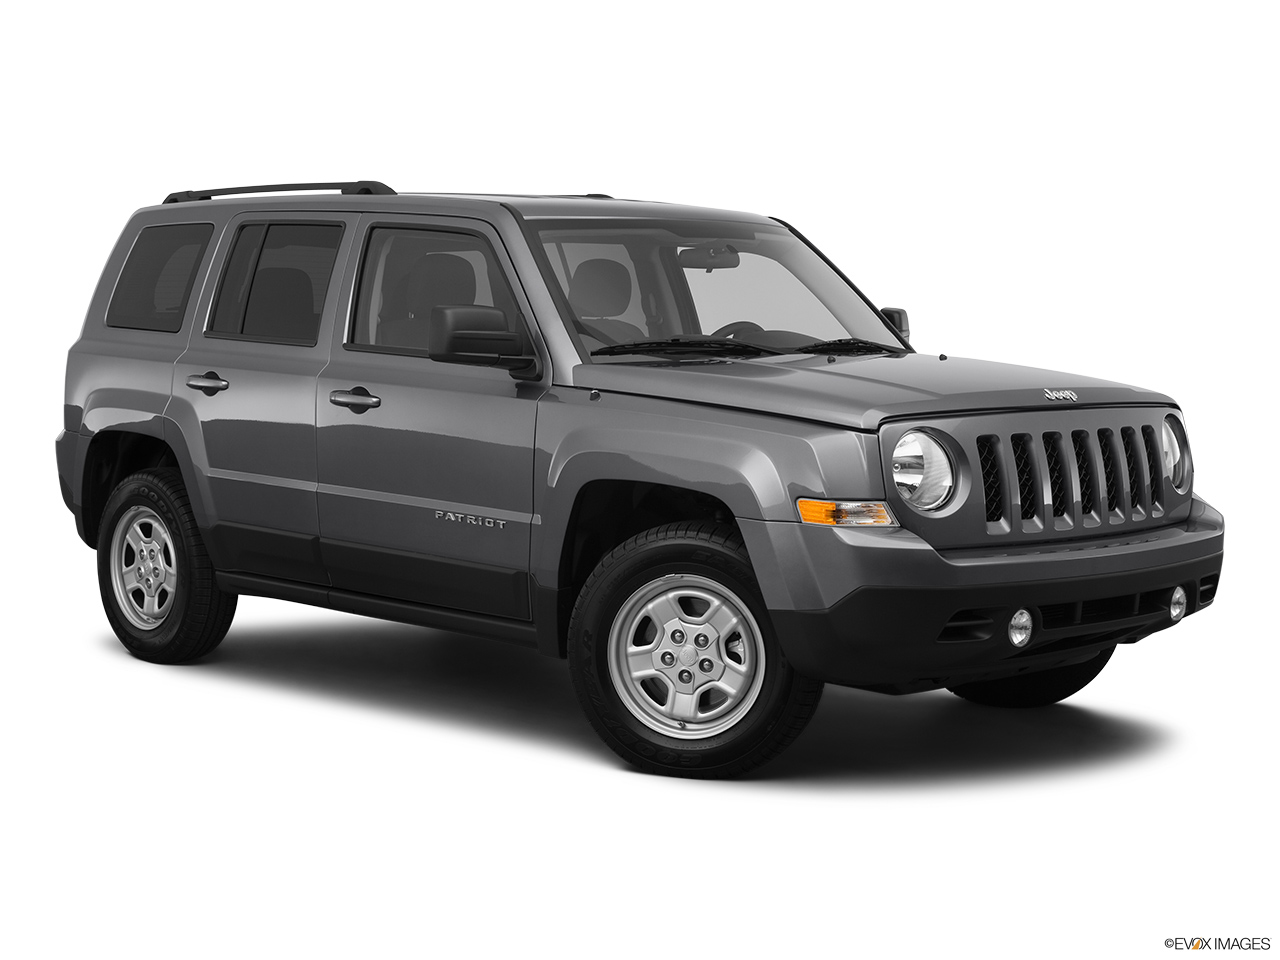 2012 Jeep Patriot Sport Front passenger 3/4 w/ wheels turned.